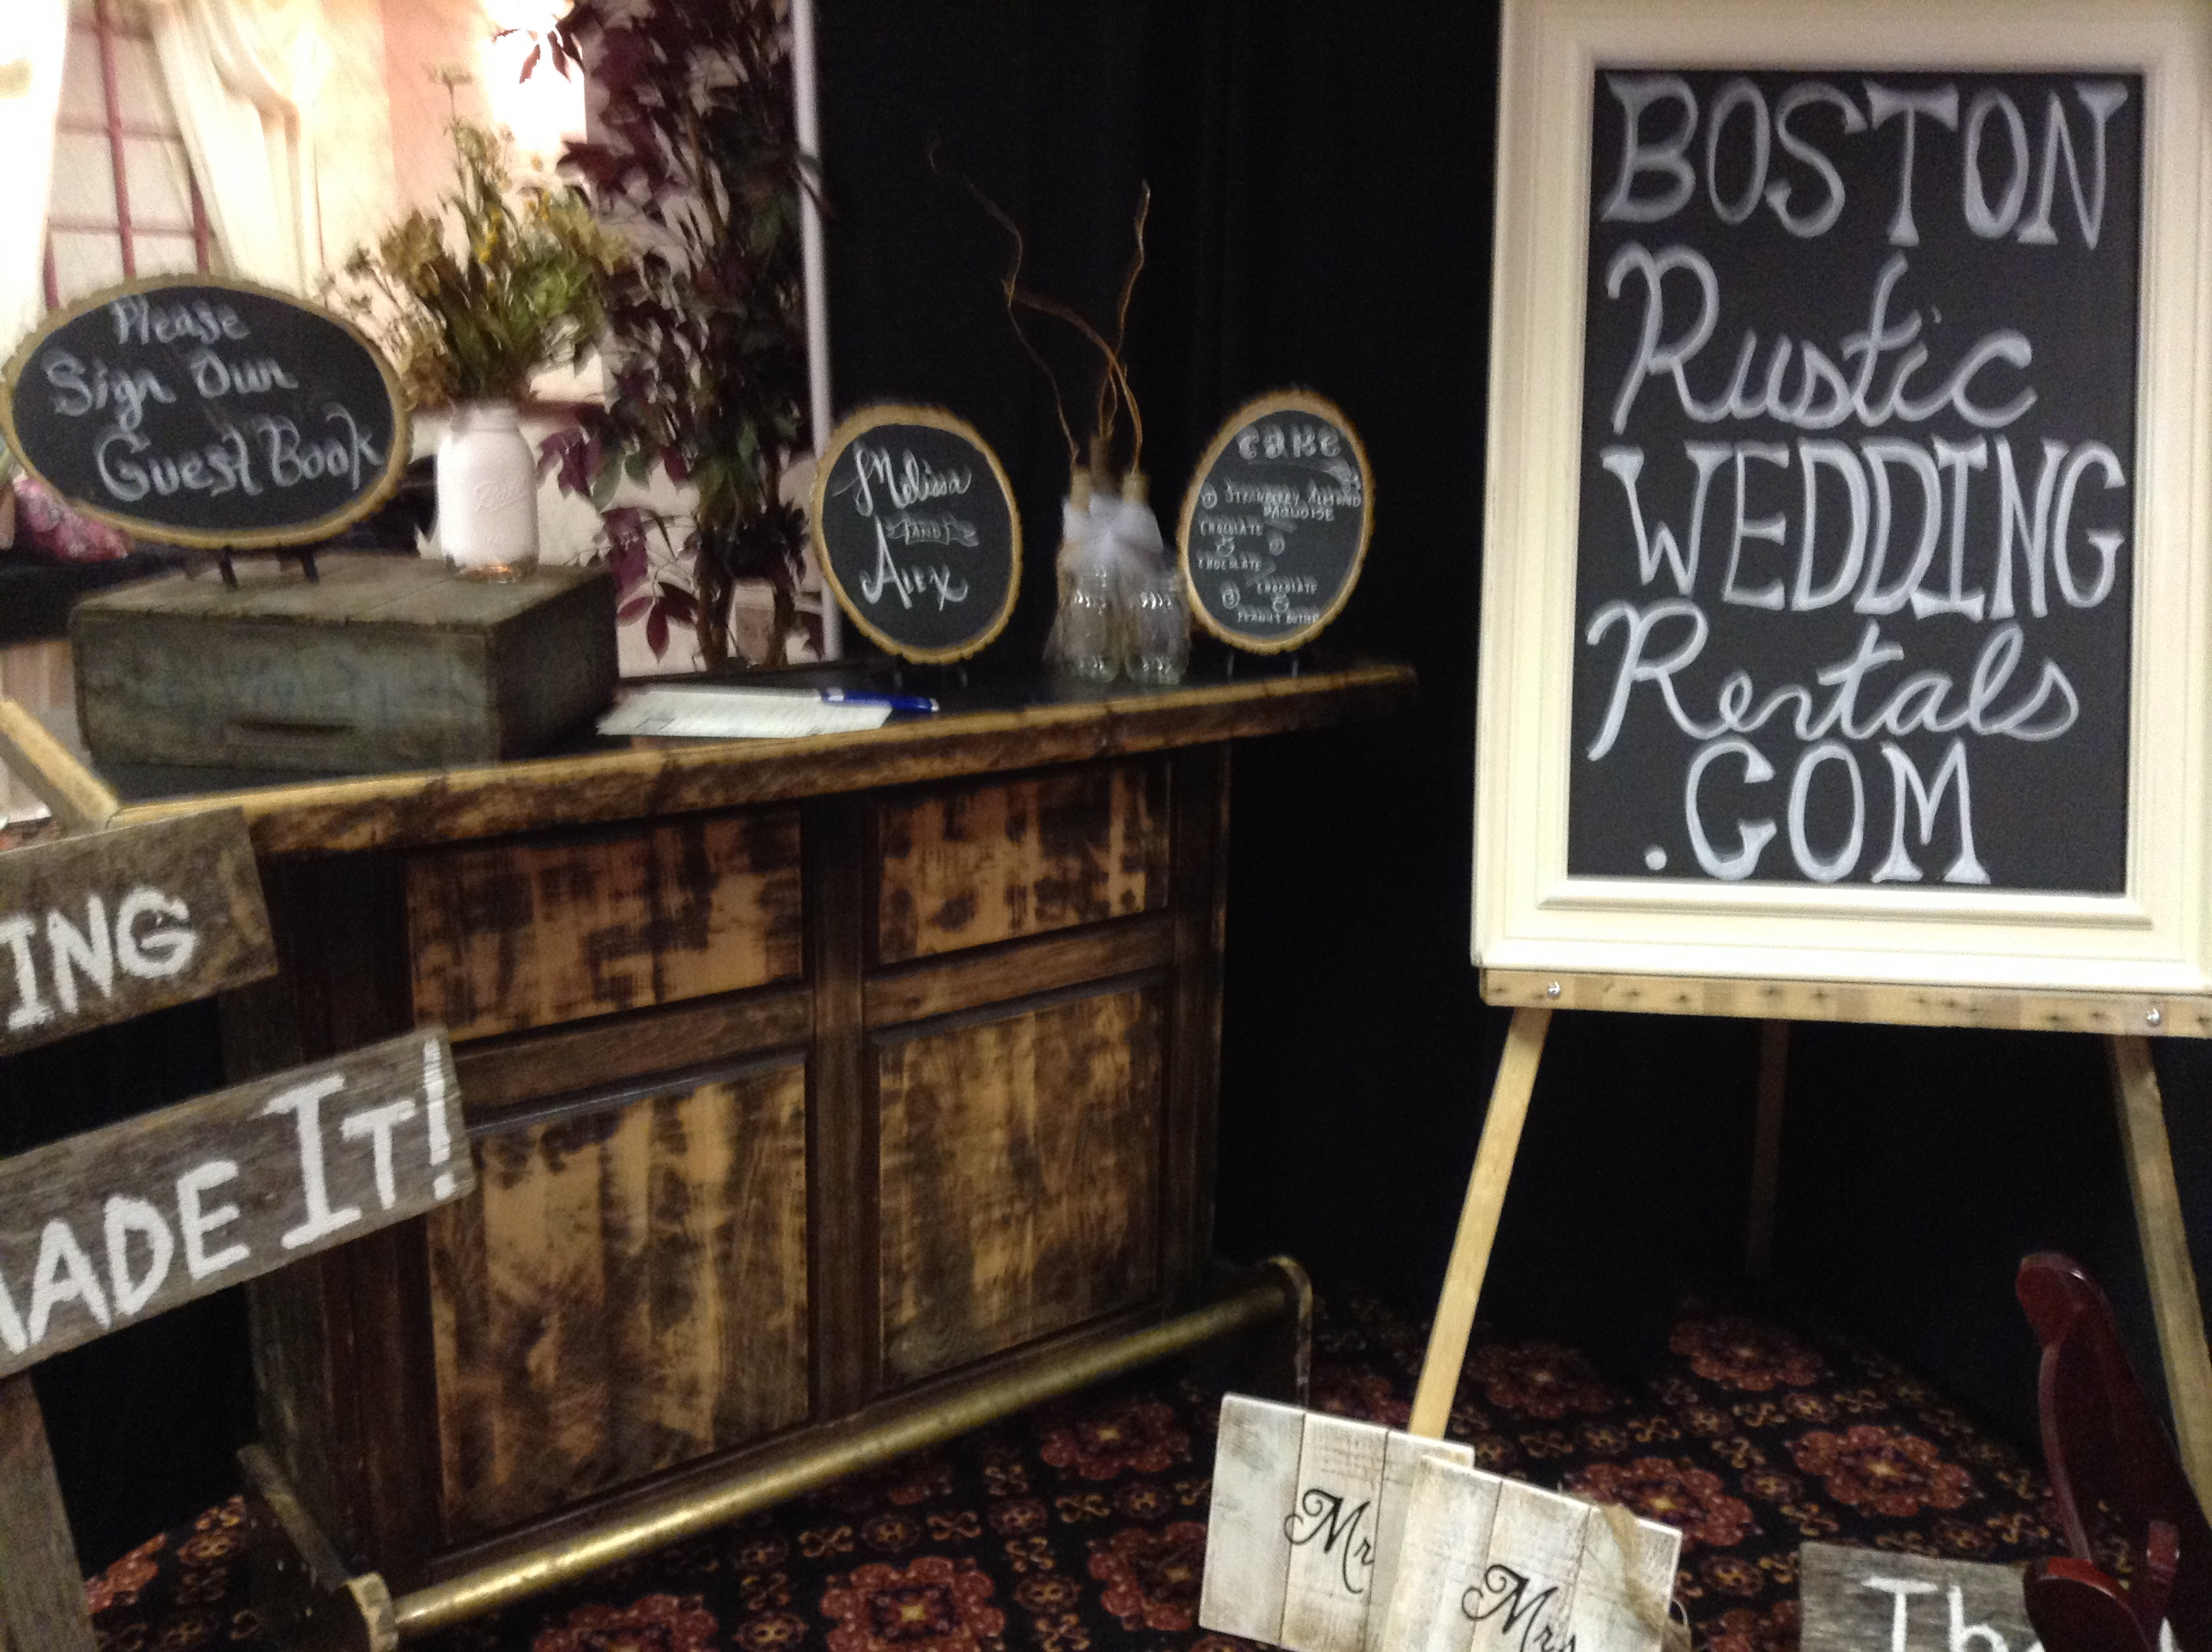 Boston Rustic Wedding Rentals Inspiration Boards The Kiosk